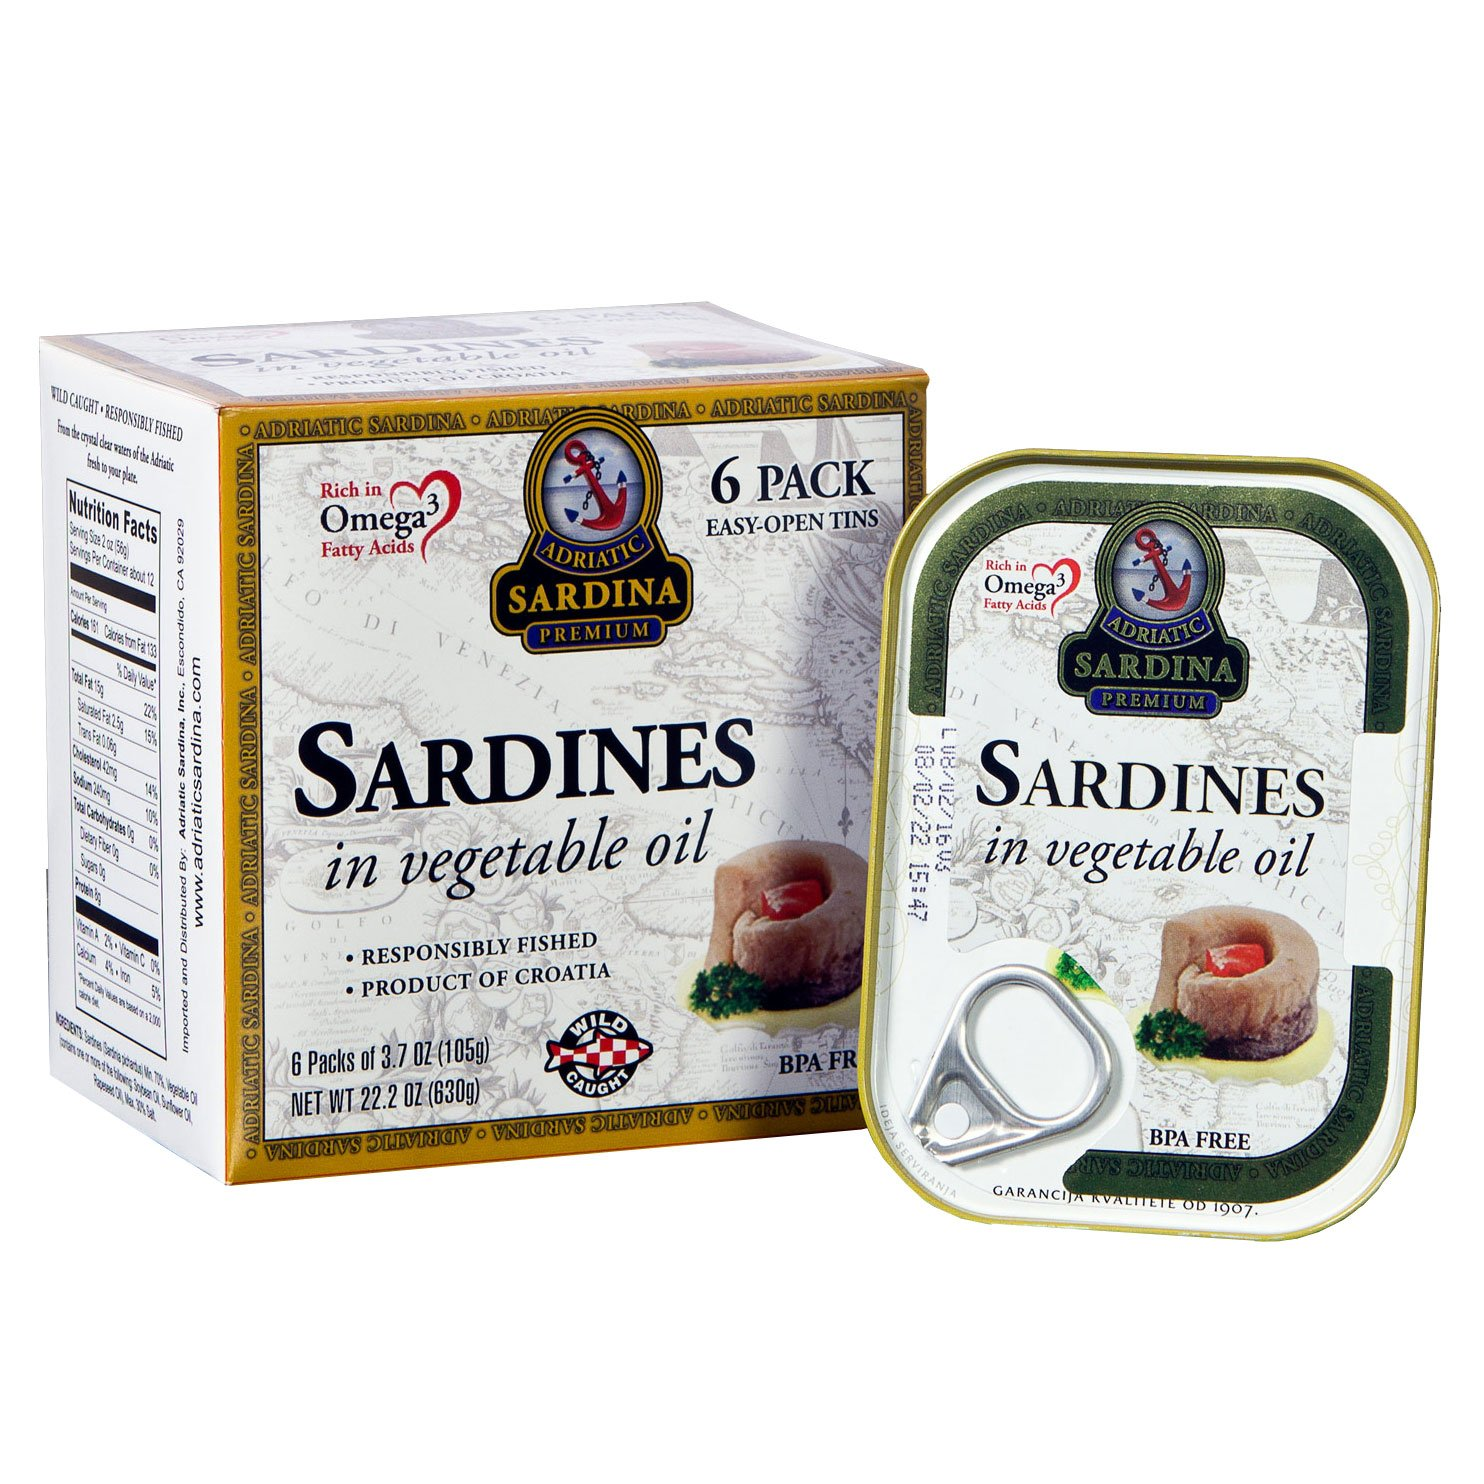 Adriatic Sardina Wild Caught Sardines in Vegetable Oil, 3.7 oz (Pack of 6)